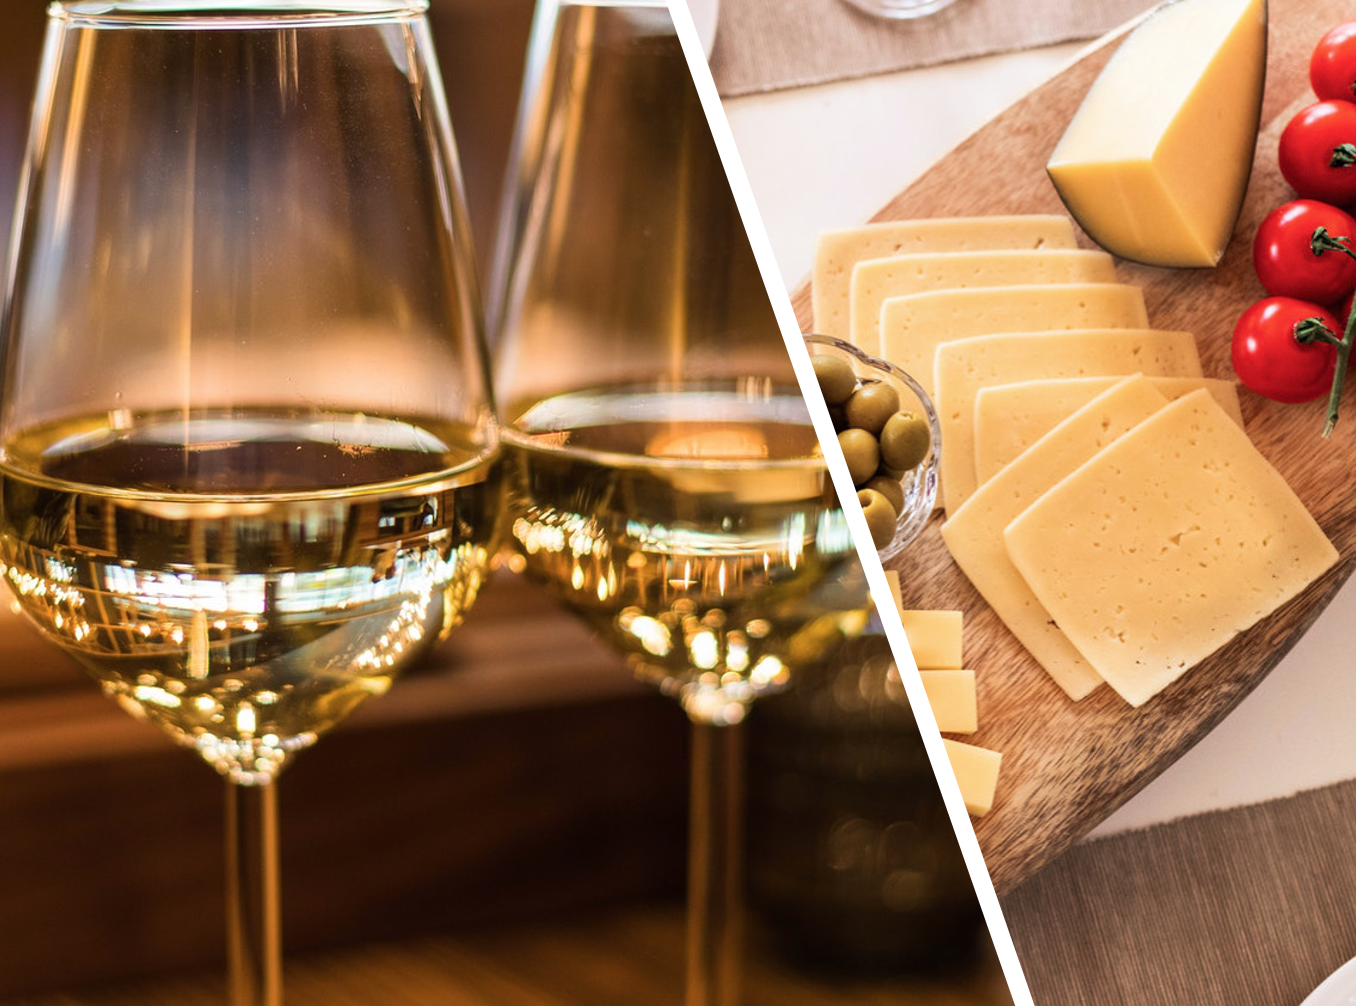 Mixed Italian Cheese for 2 People & Bottle of Chardonnay